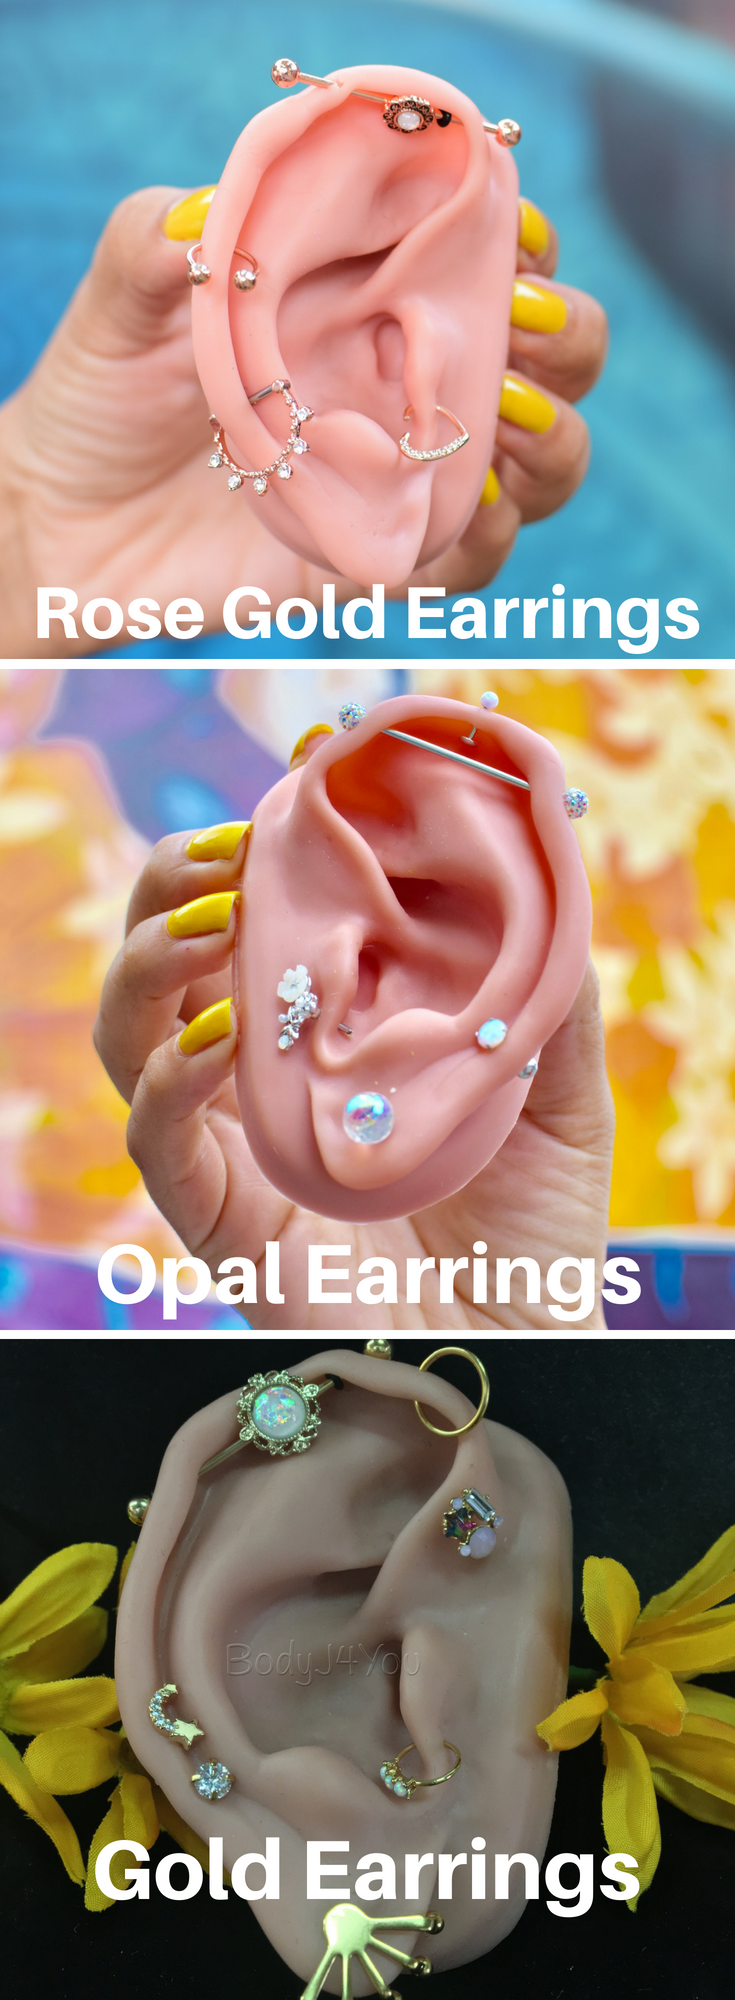 New piercing ideas  Here are a few curated ears we have created with our BodyJYou